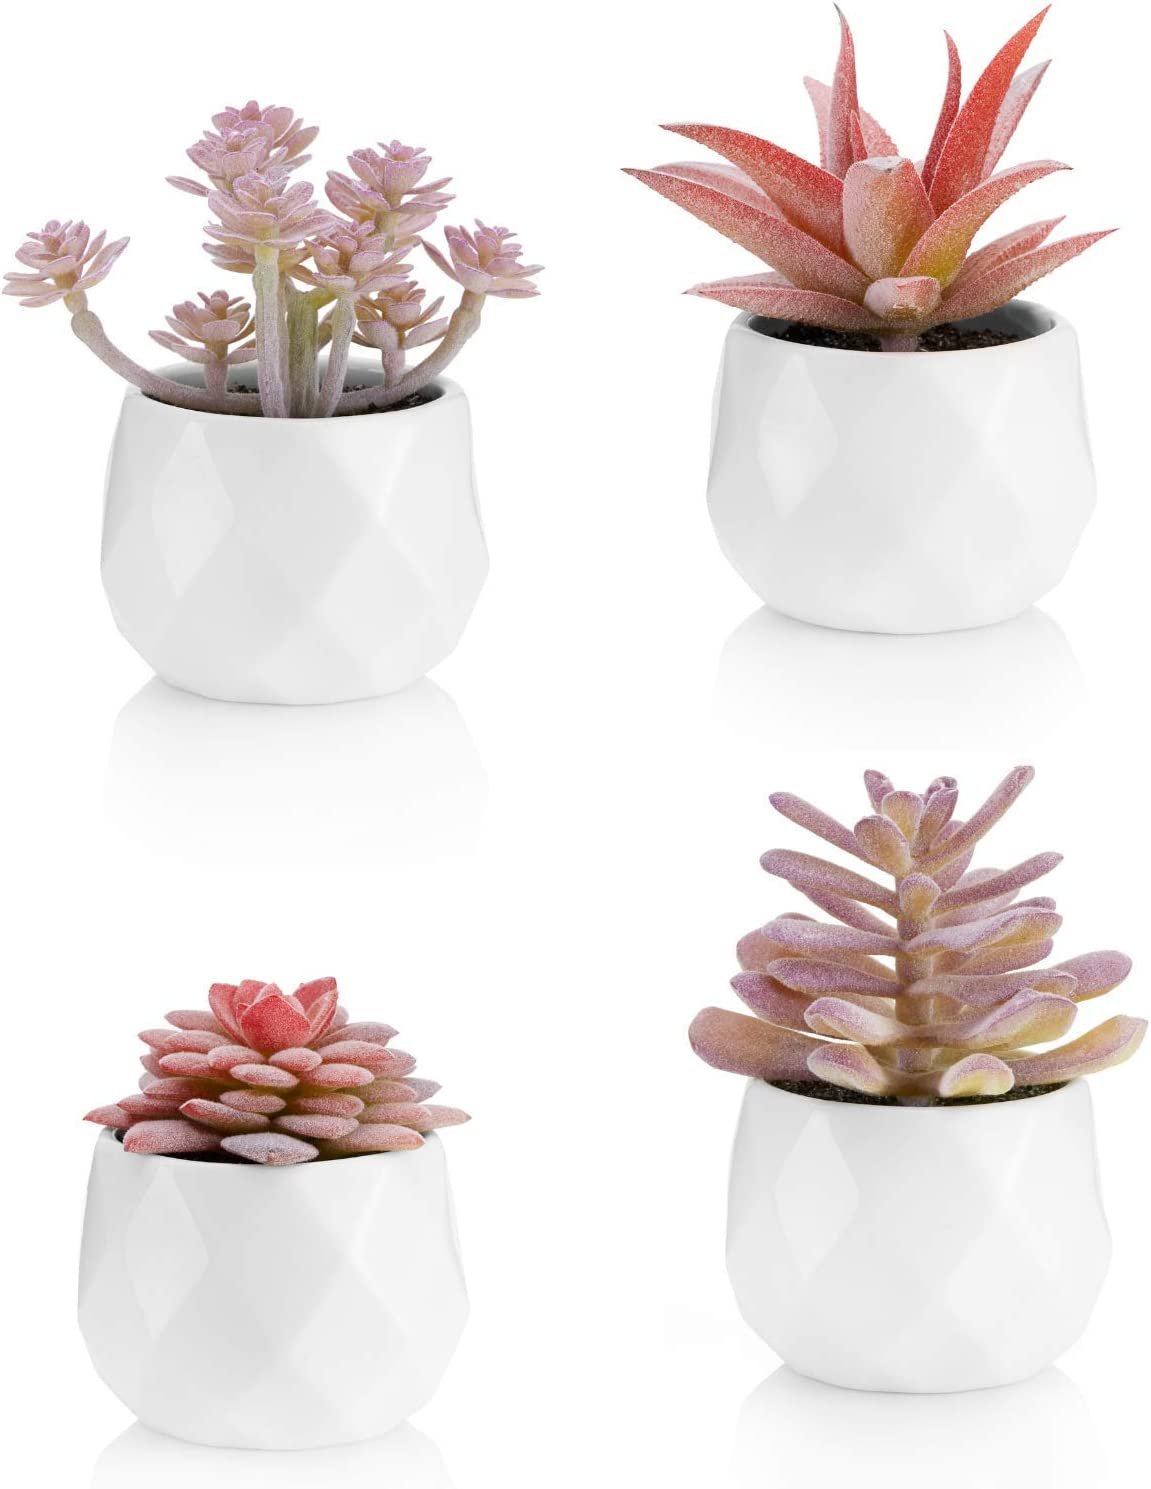 Amazon Com Viverie Faux Succulents In White Ceramic Pots For Desk Office Living Room And Home Decoration Fake Plants Included Set Of 4 Artificial Succulents Kitchen Dining